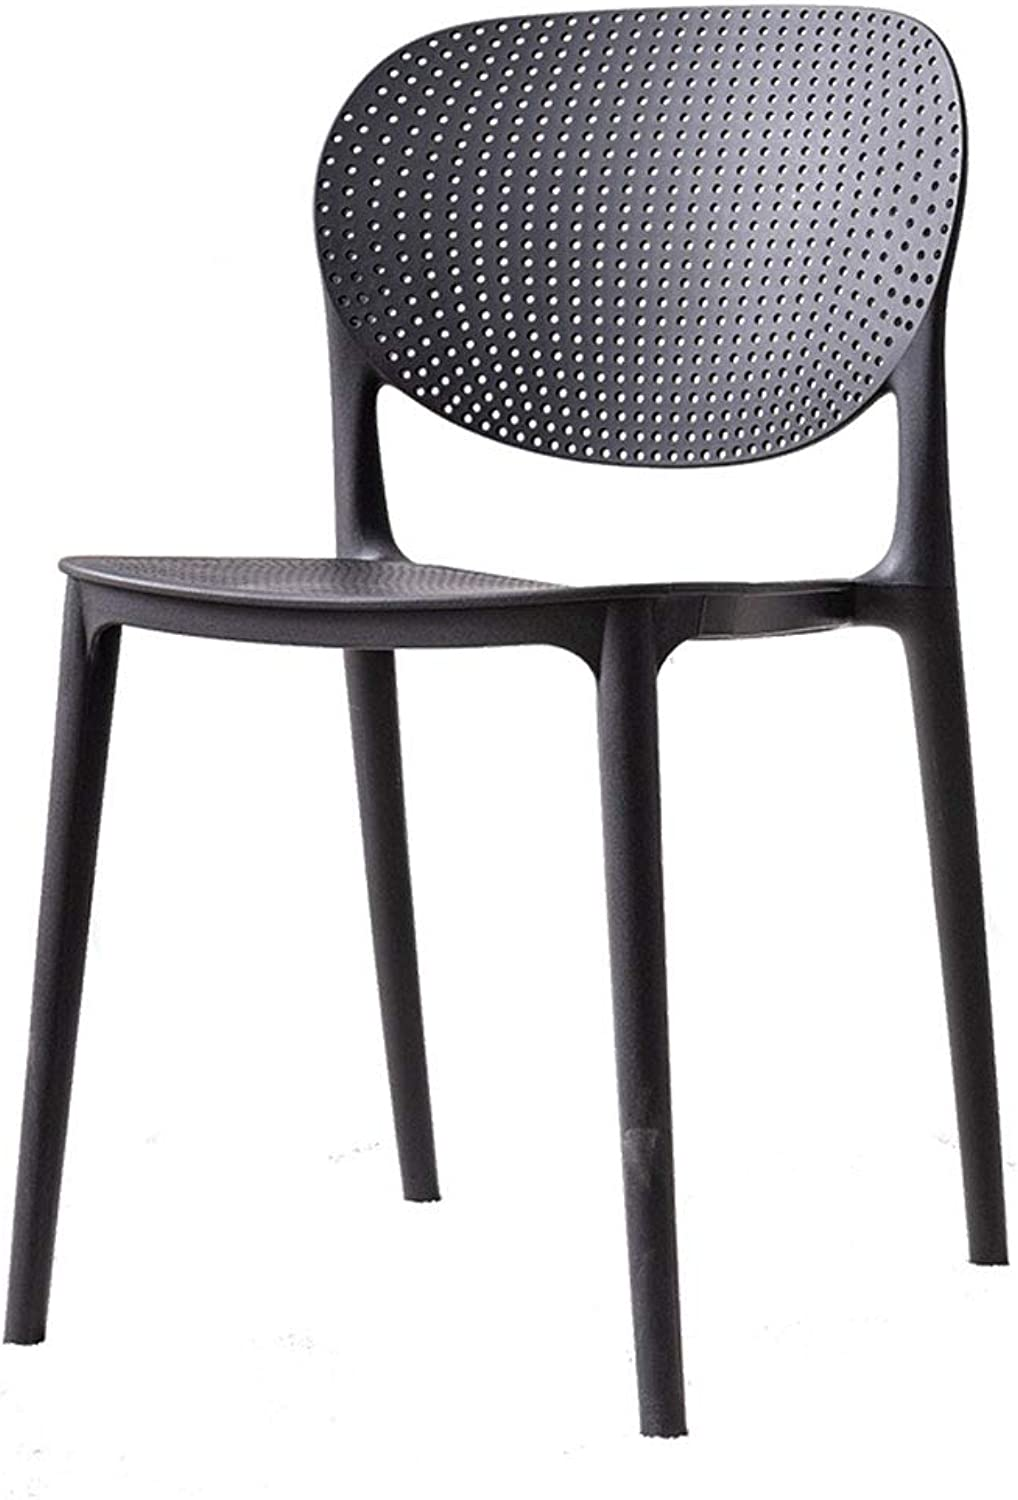 Plastic Chair Modern Minimalist Office Computer Chair Home Lazy Makeup Chair Fashion Padded Backrest Chair (color   Black)